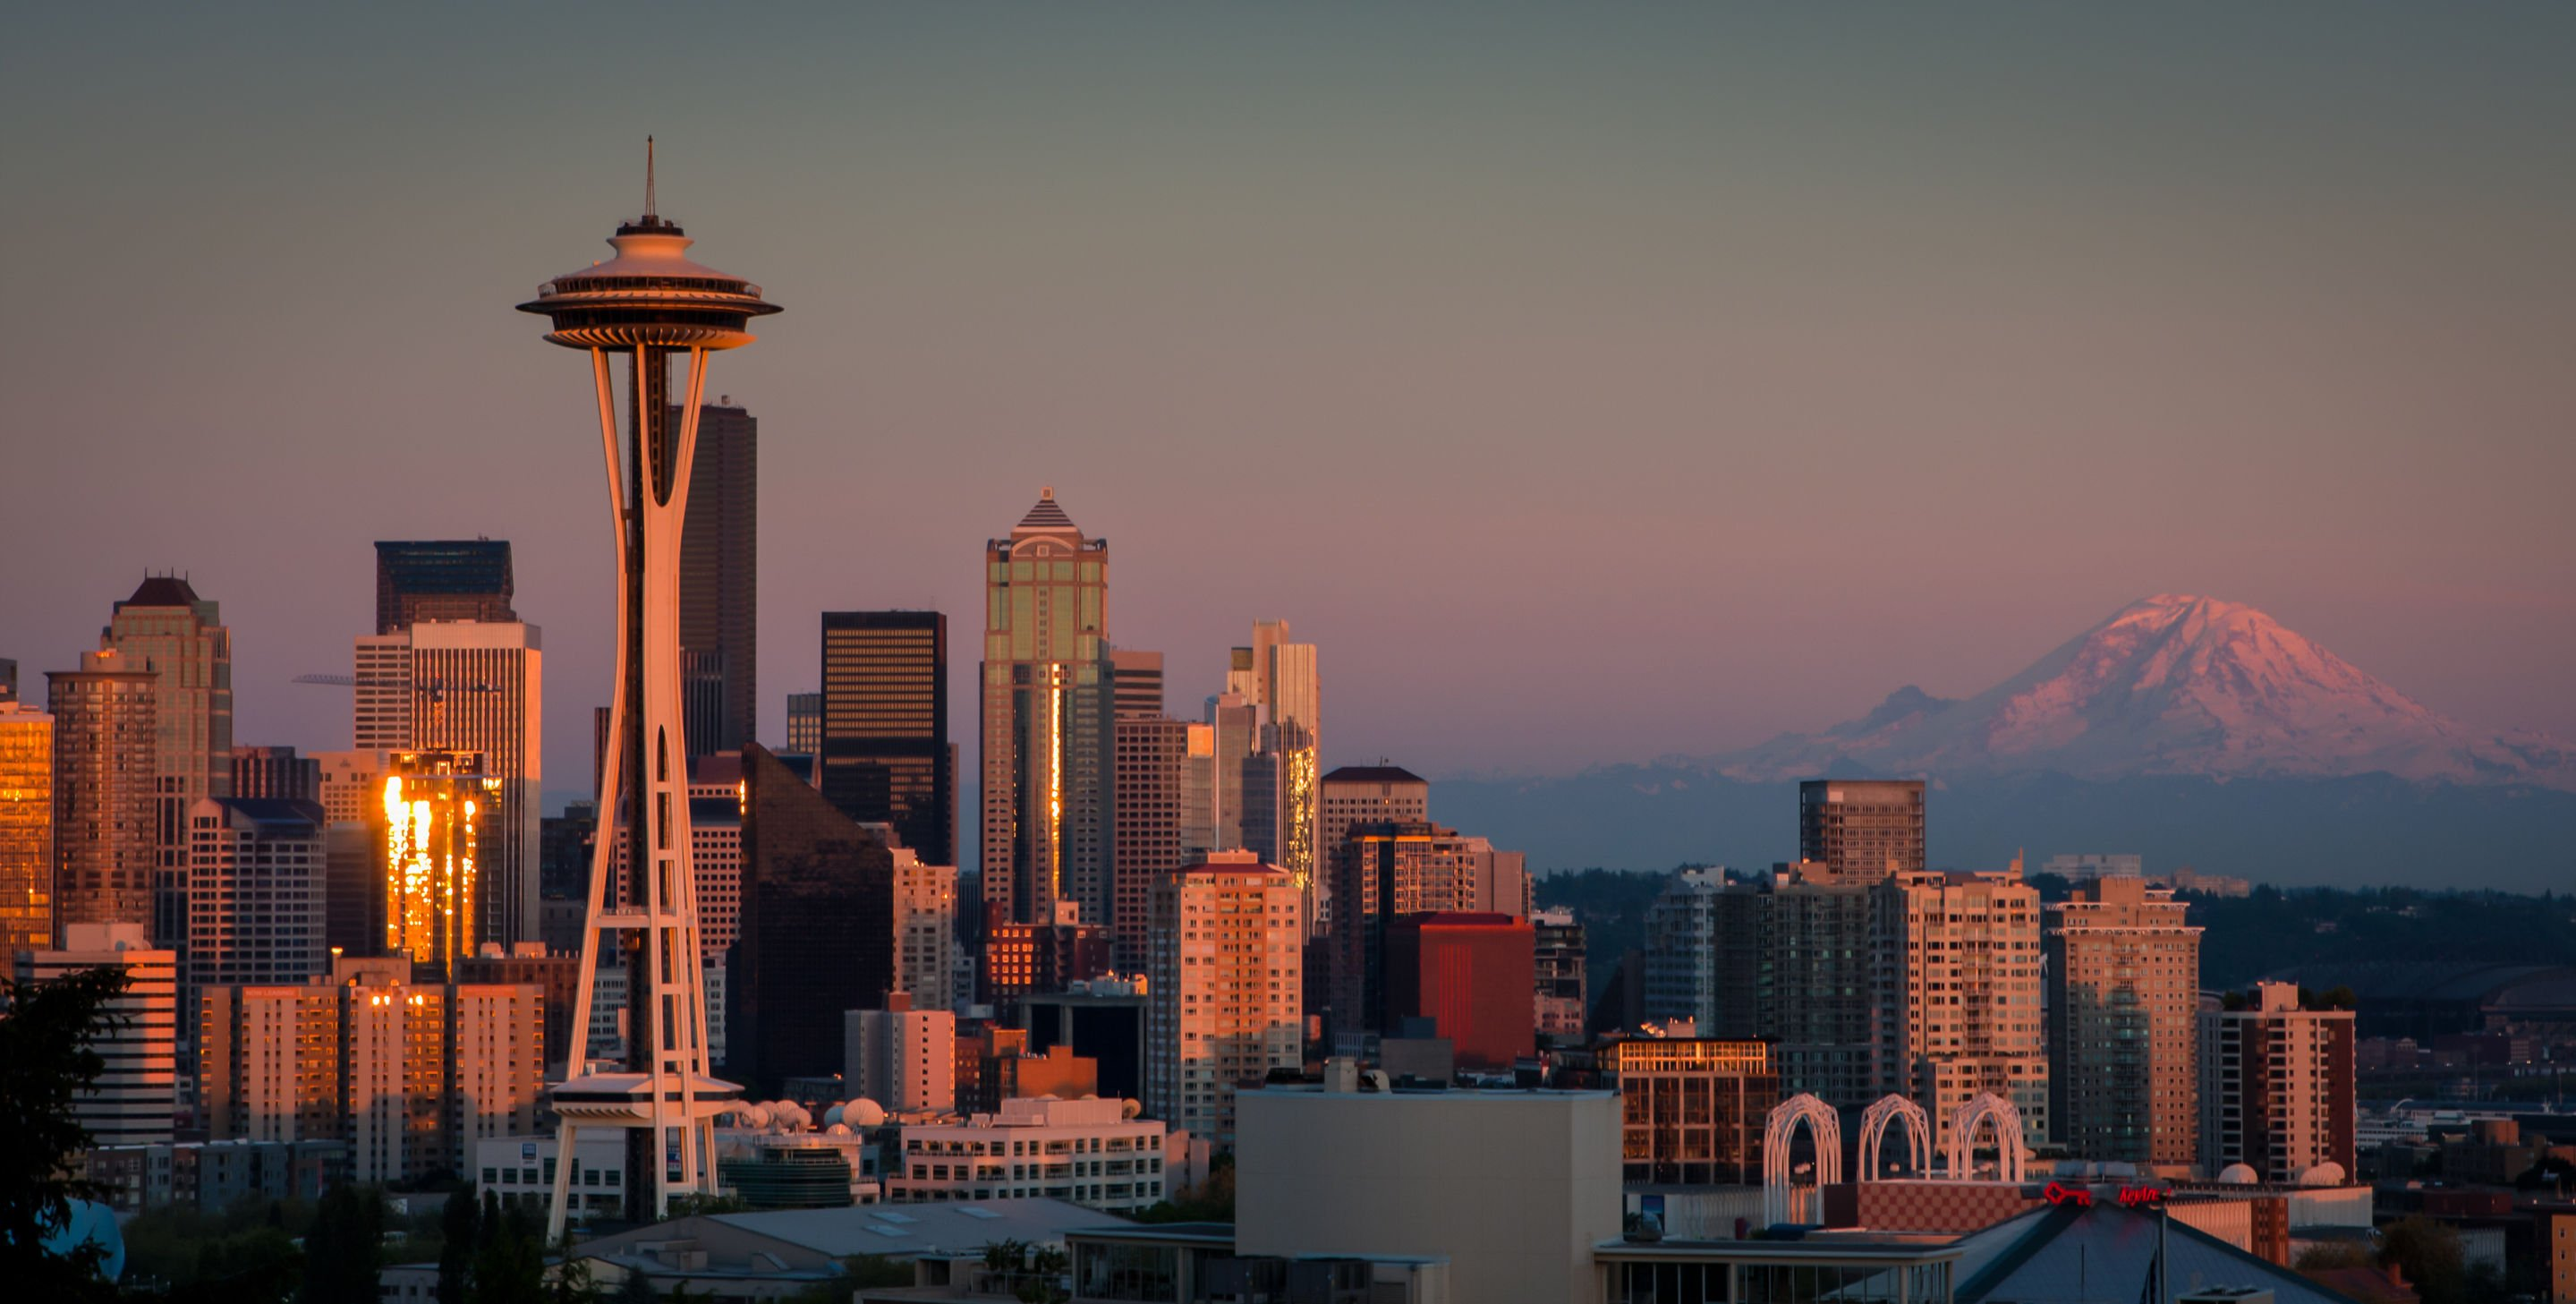 Lack of cannabis tracking data in Washington state sparks confusion, missed business opportunities